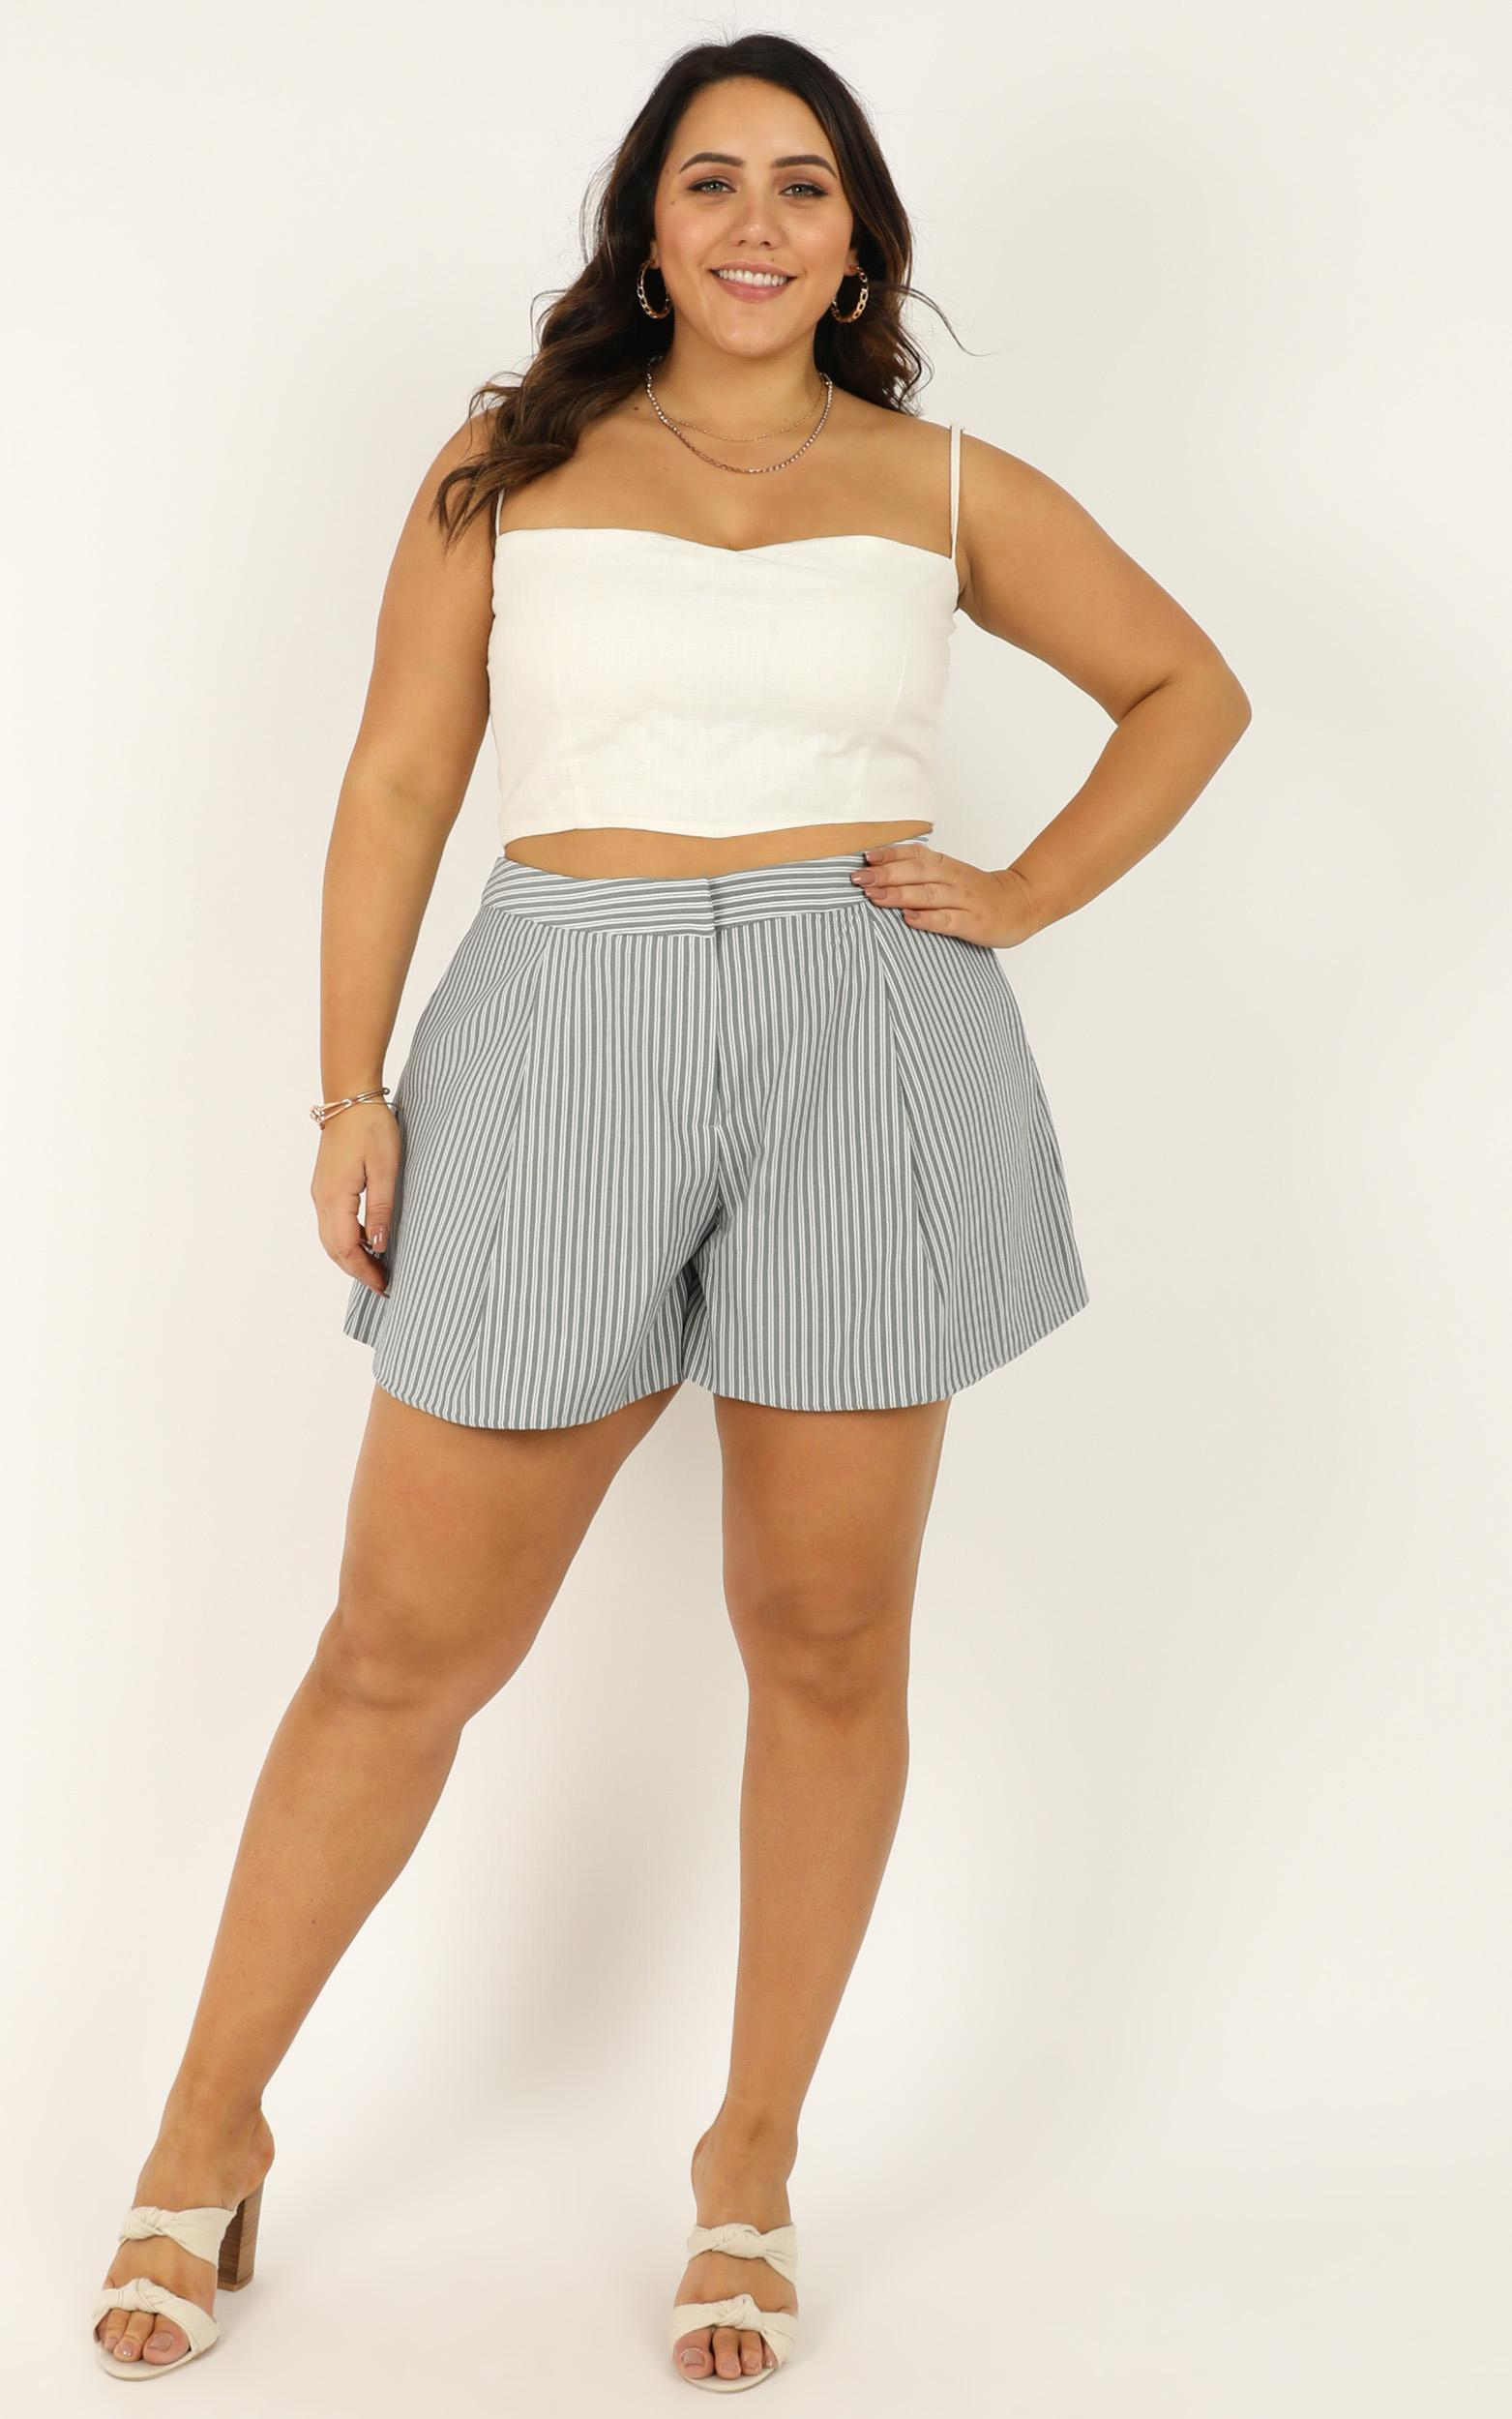 You Took A Swing Shorts In blue stripe - 18 (XXXL), Blue, hi-res image number null